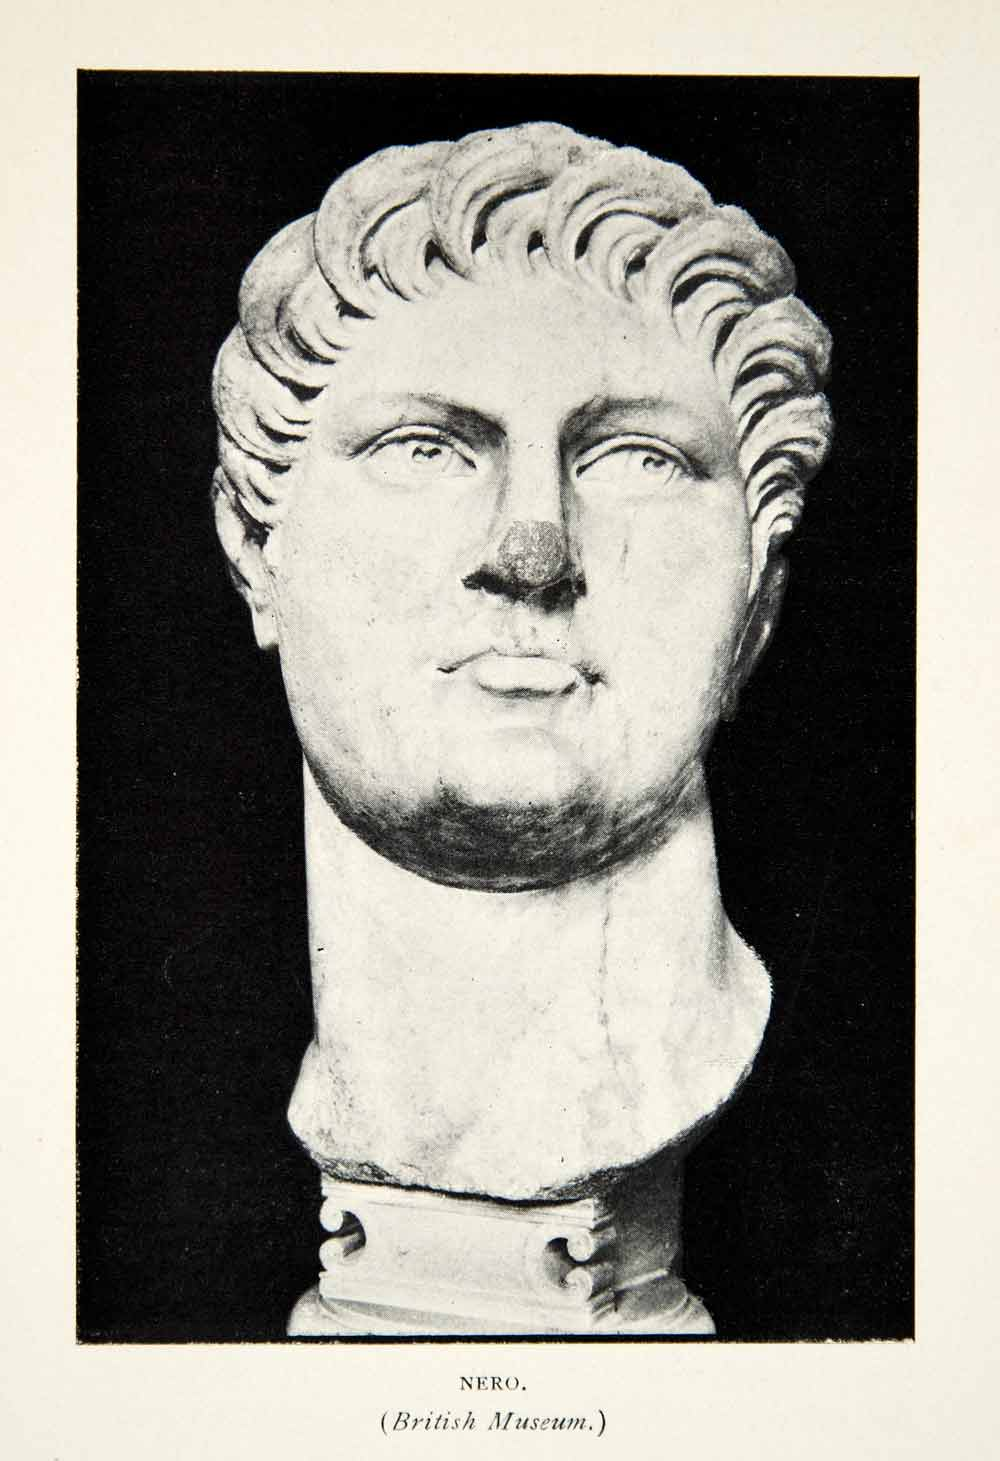 a biography of nero the roman emperor Buy nero new ed by edward champlin (isbn: 9780674018228) from  nero is  a focused account of the life of roman emperor nero claudius caesar.